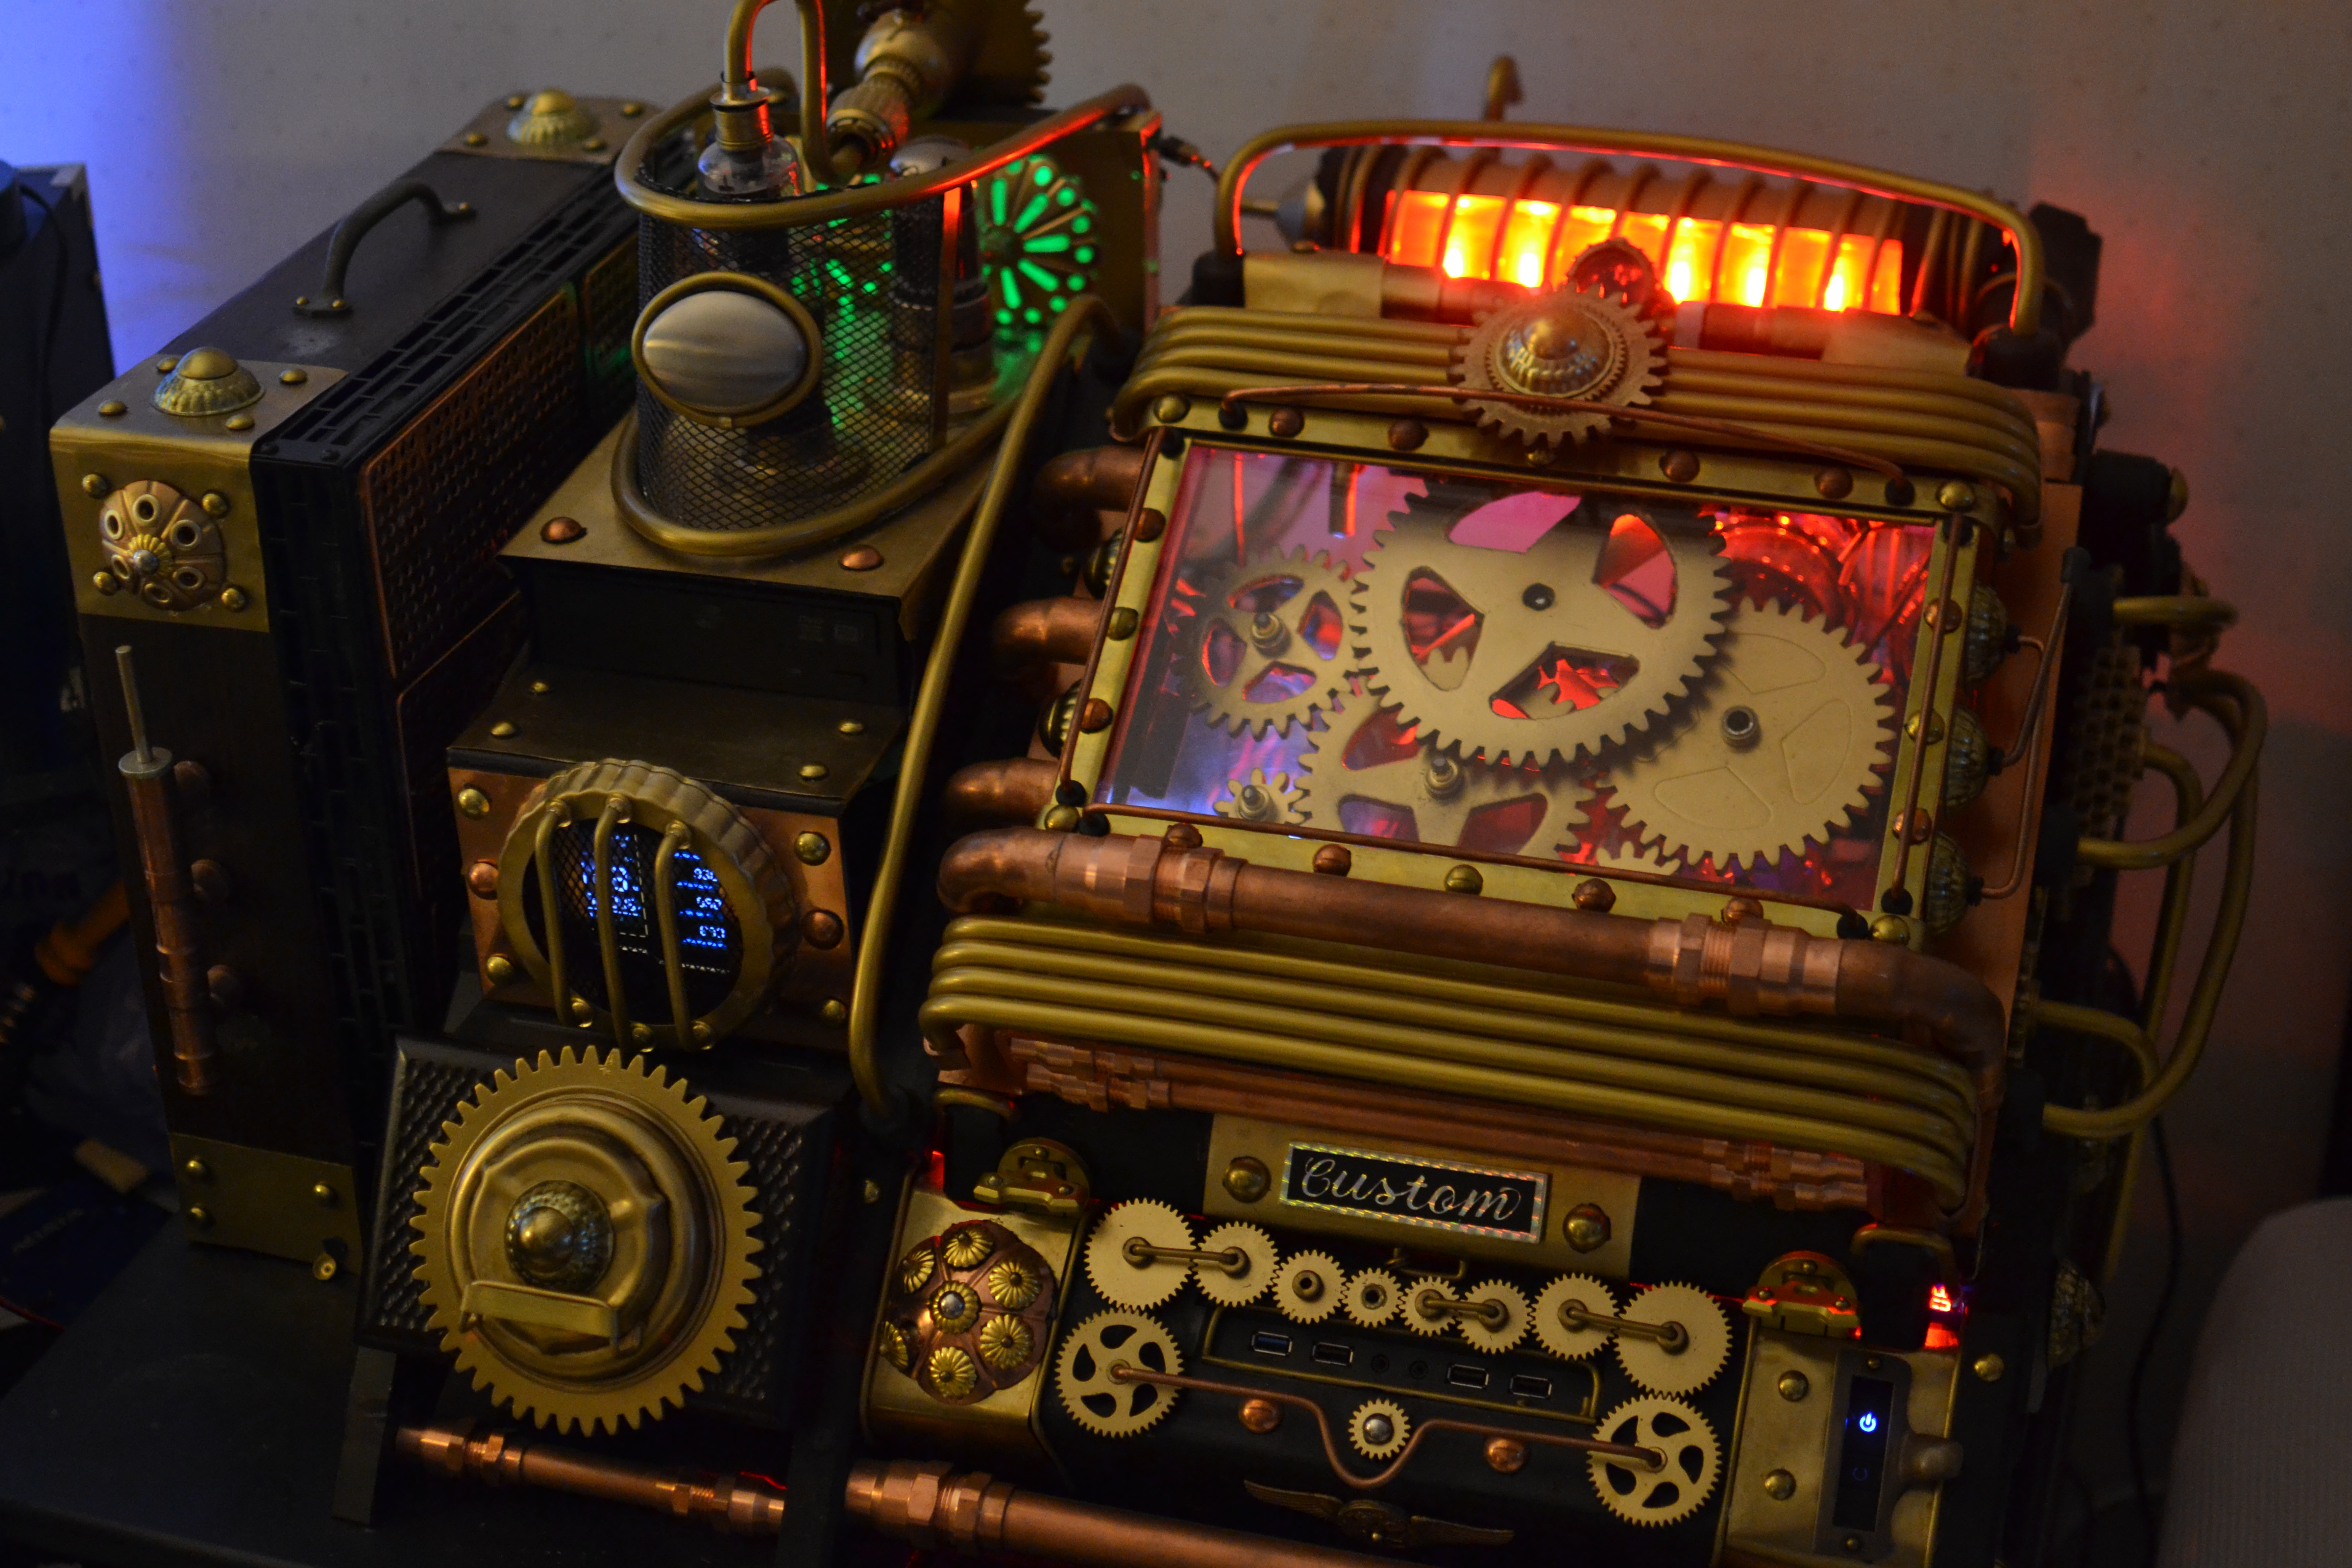 The Steampunk PC